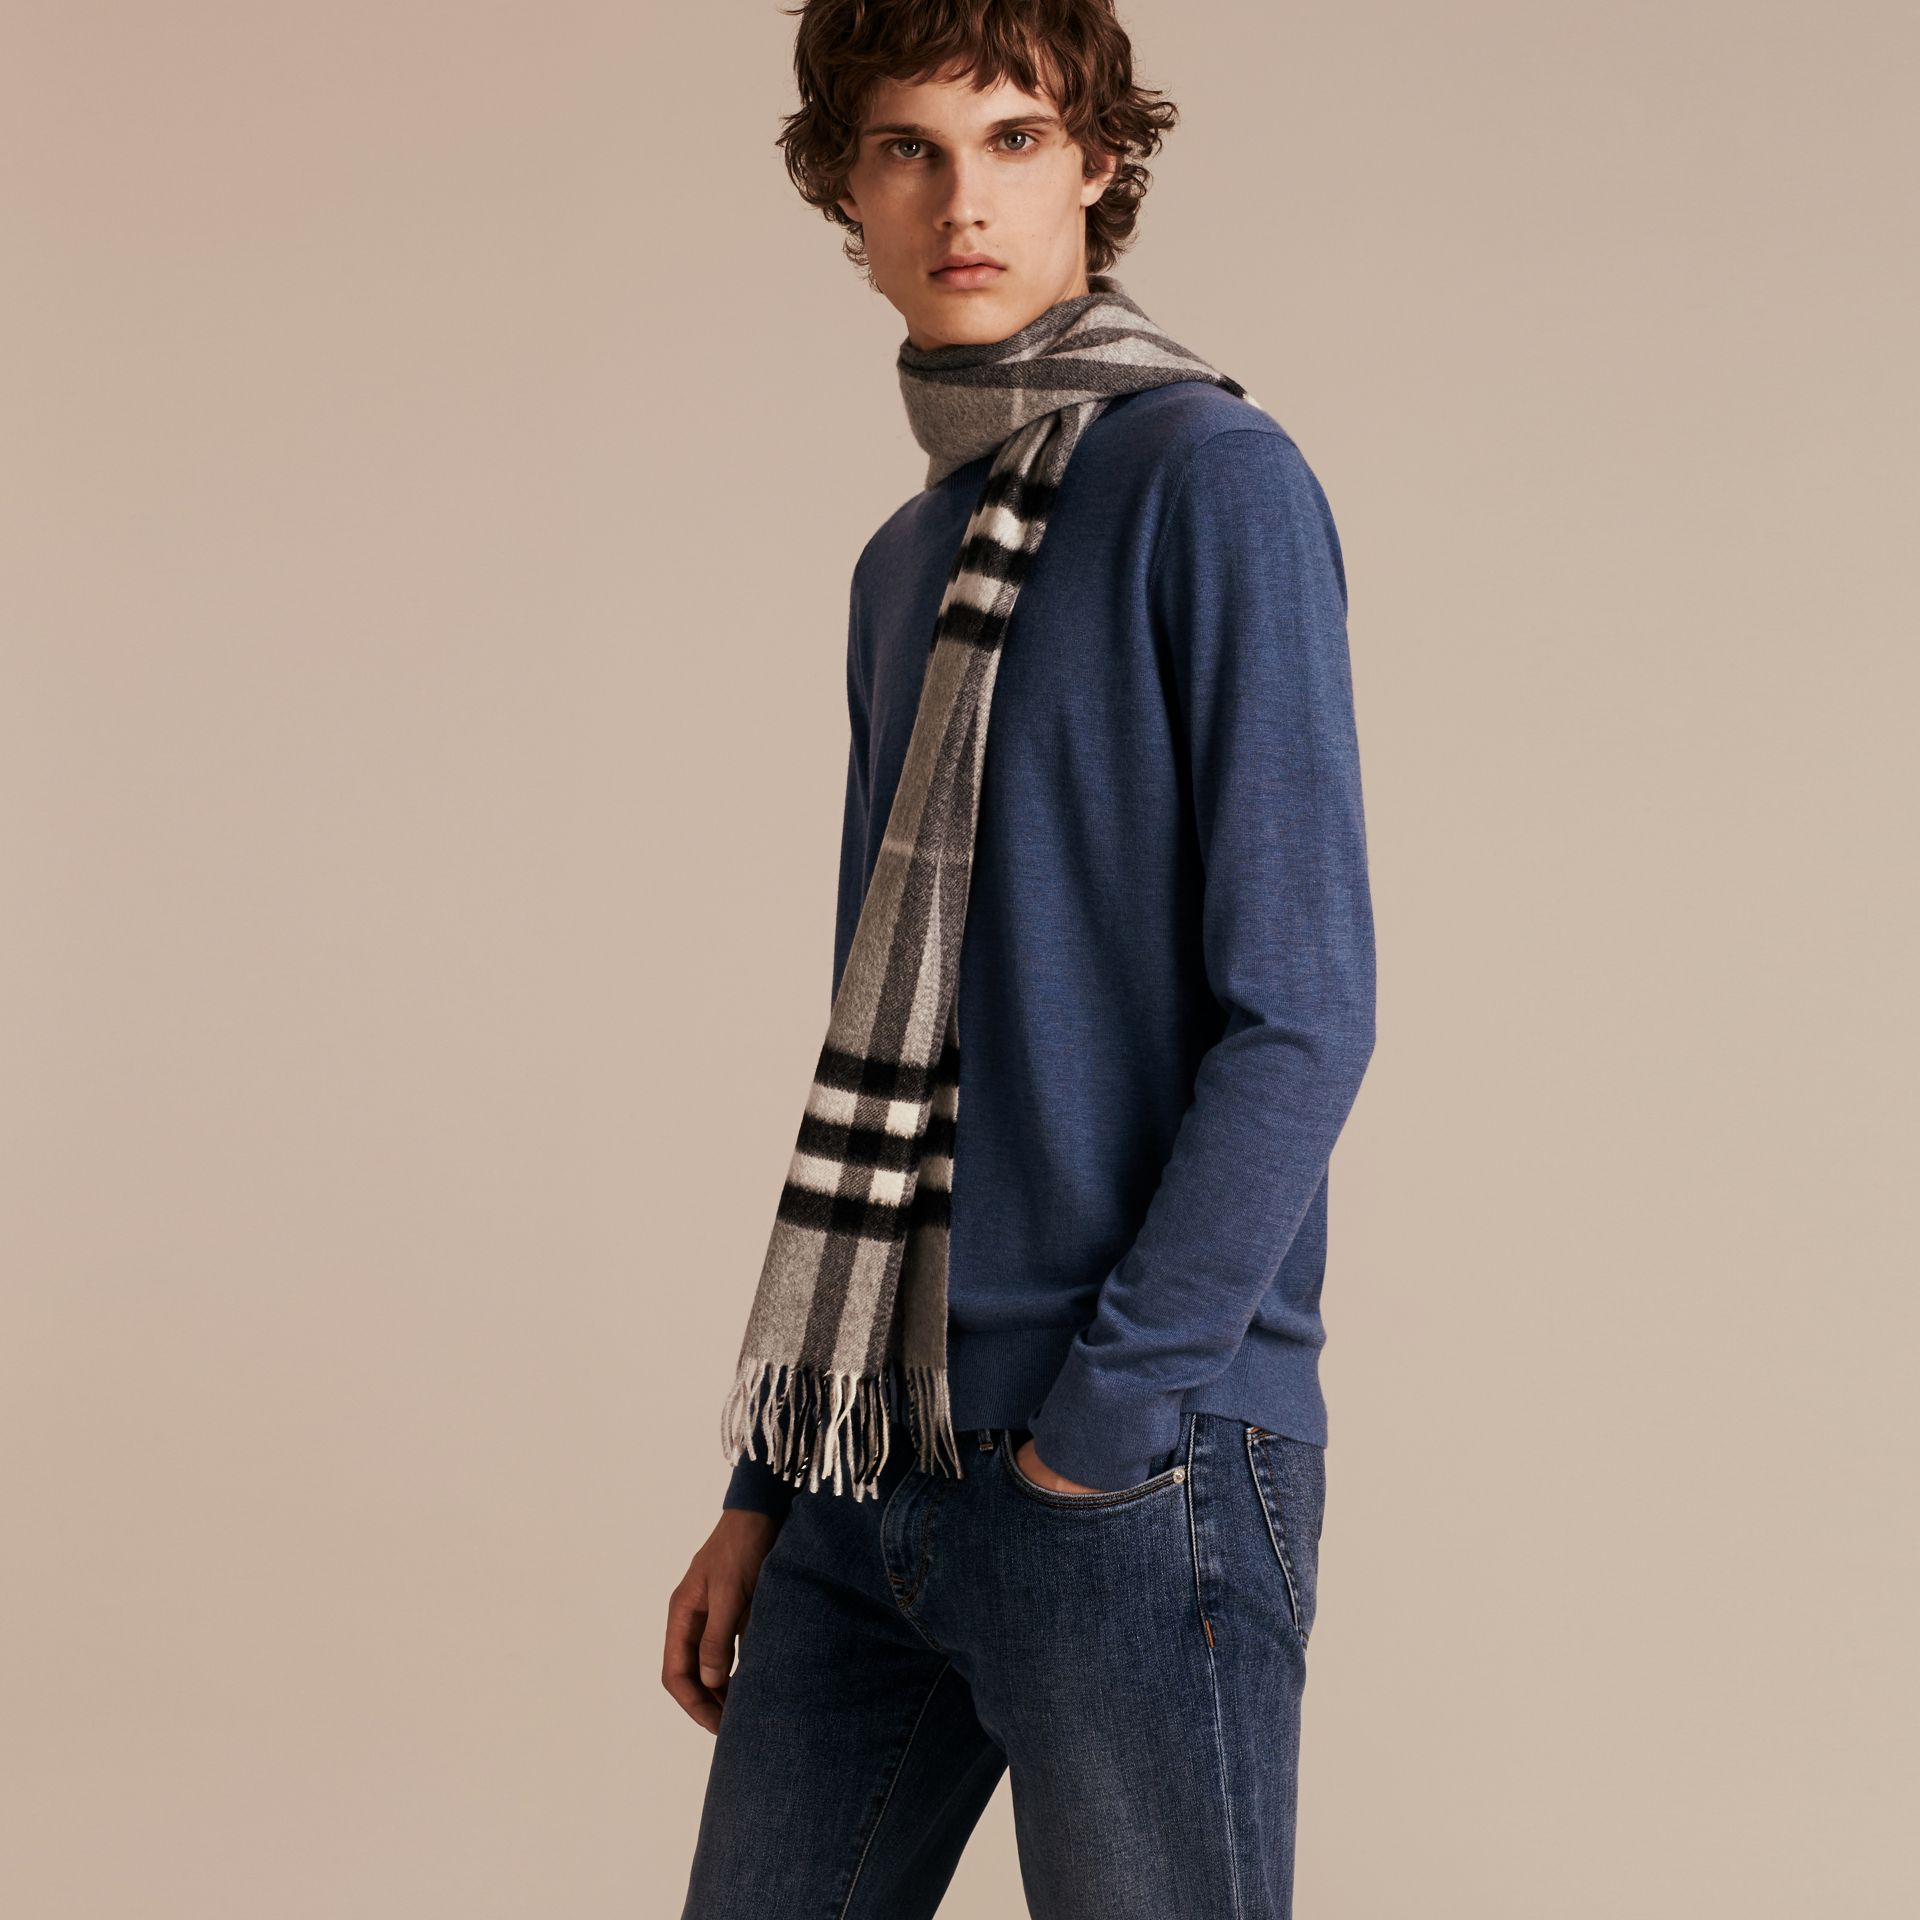 Dusty blue Lightweight Crew Neck Cashmere Sweater with Check Trim Dusty Blue - gallery image 6